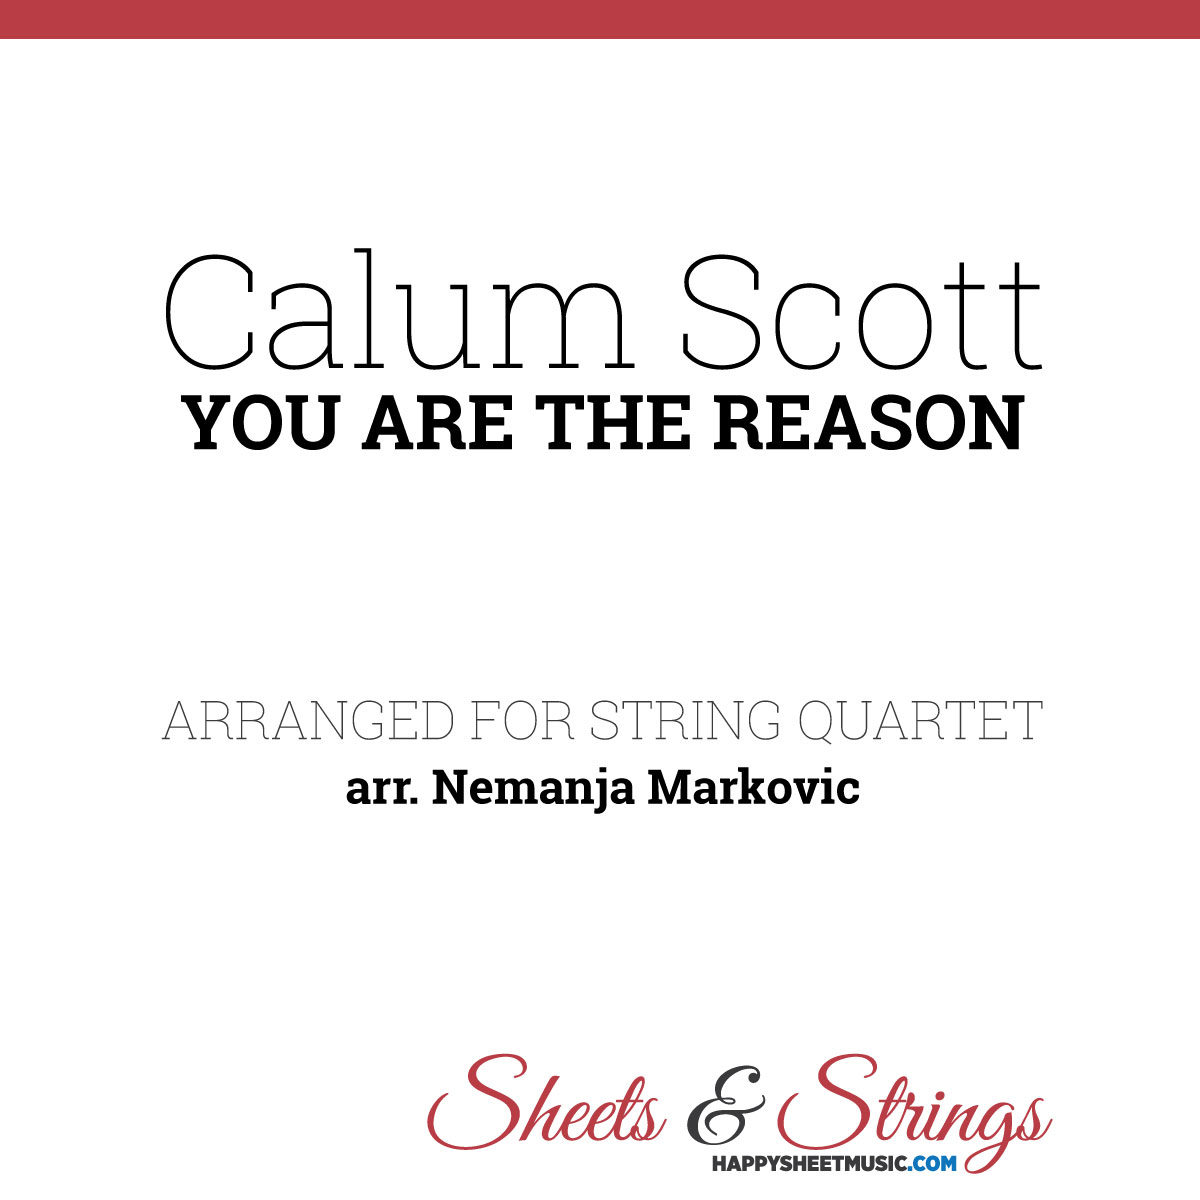 Calum Scott - You Are The Reason - Sheet Music for String Quartet - Music Arrangement for String Quartet